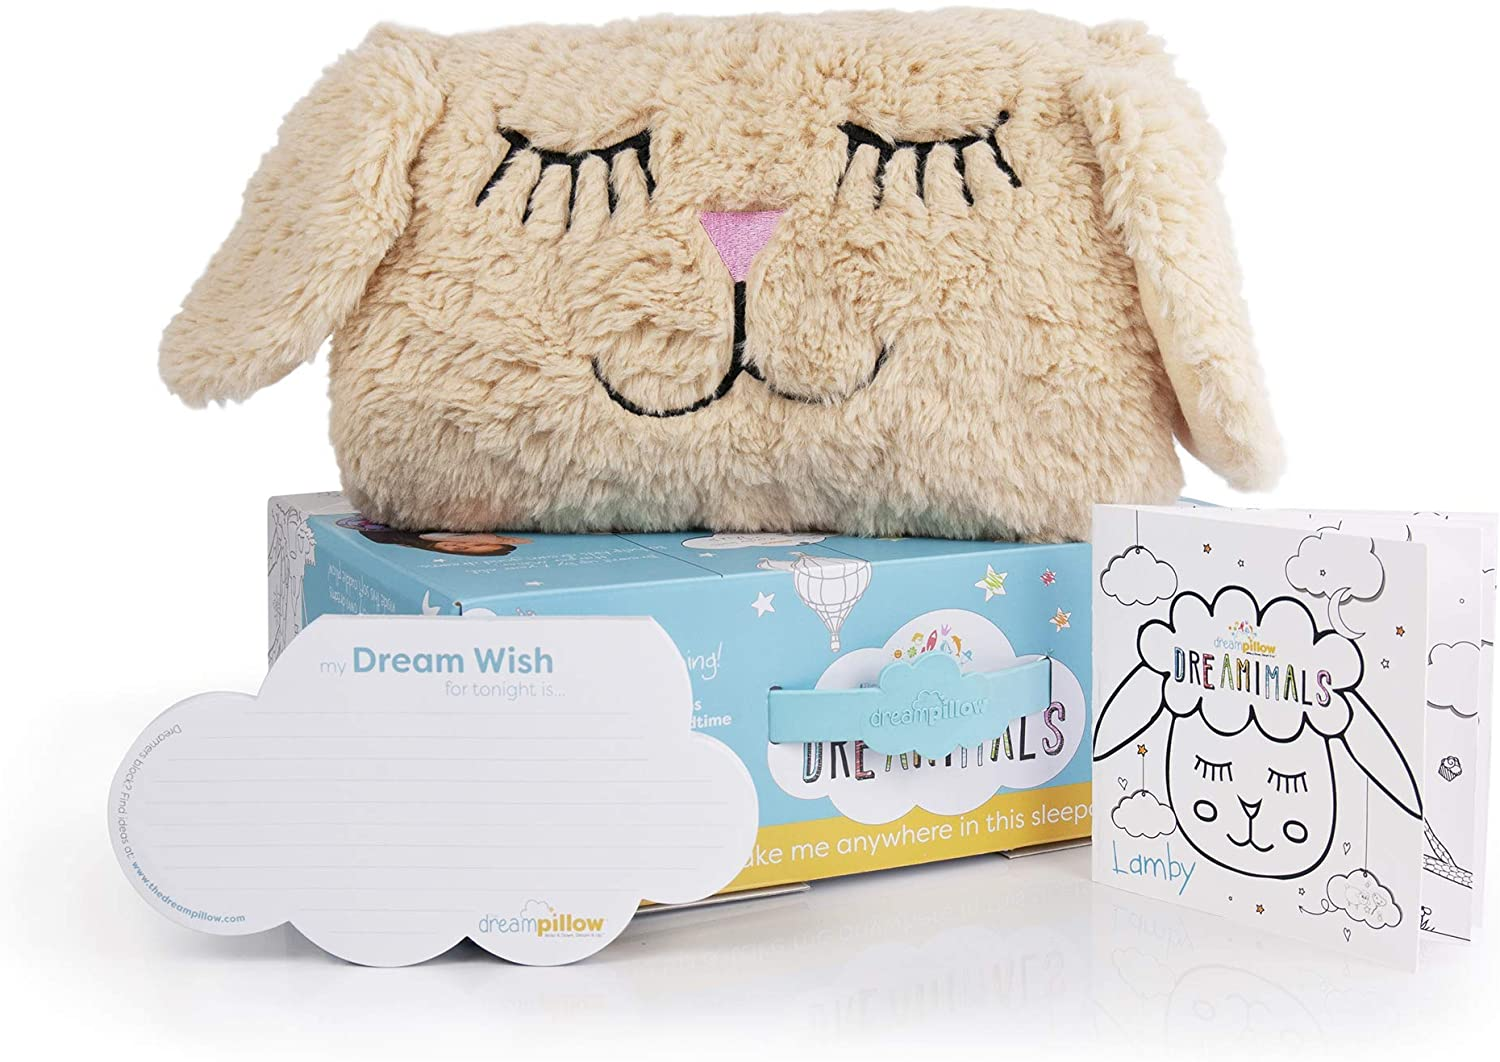 Dreamimals - Soft Squishy Plush Animal Pillow Special Pocket for Dream Wishes - Cute Comfy Security Toy for Toddlers and Kids Adorable Stuffed Lamb for Children to Cuddle to get Better Sleep - Lamby